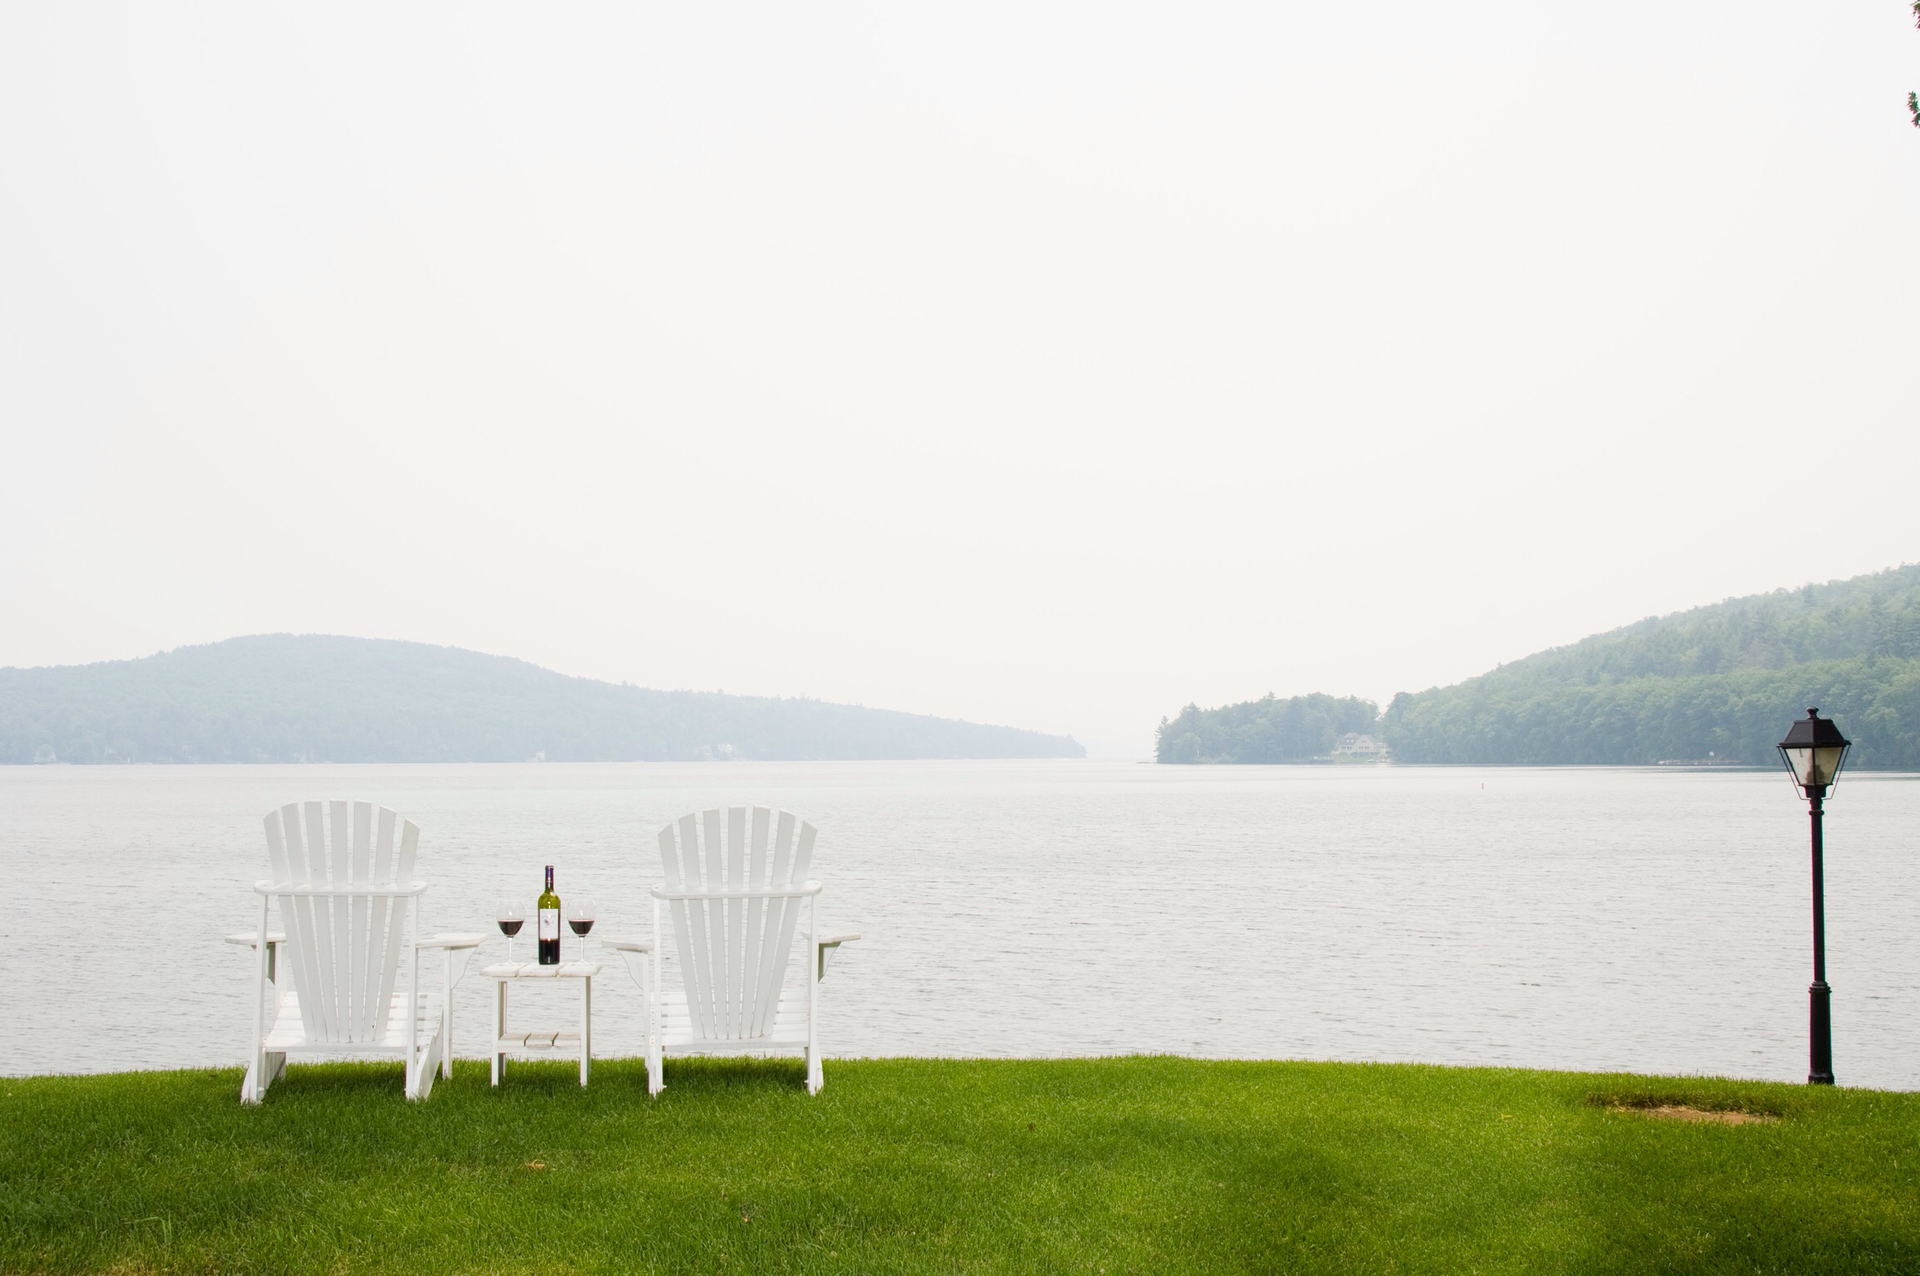 water | landscape, no person, lake, outdoors